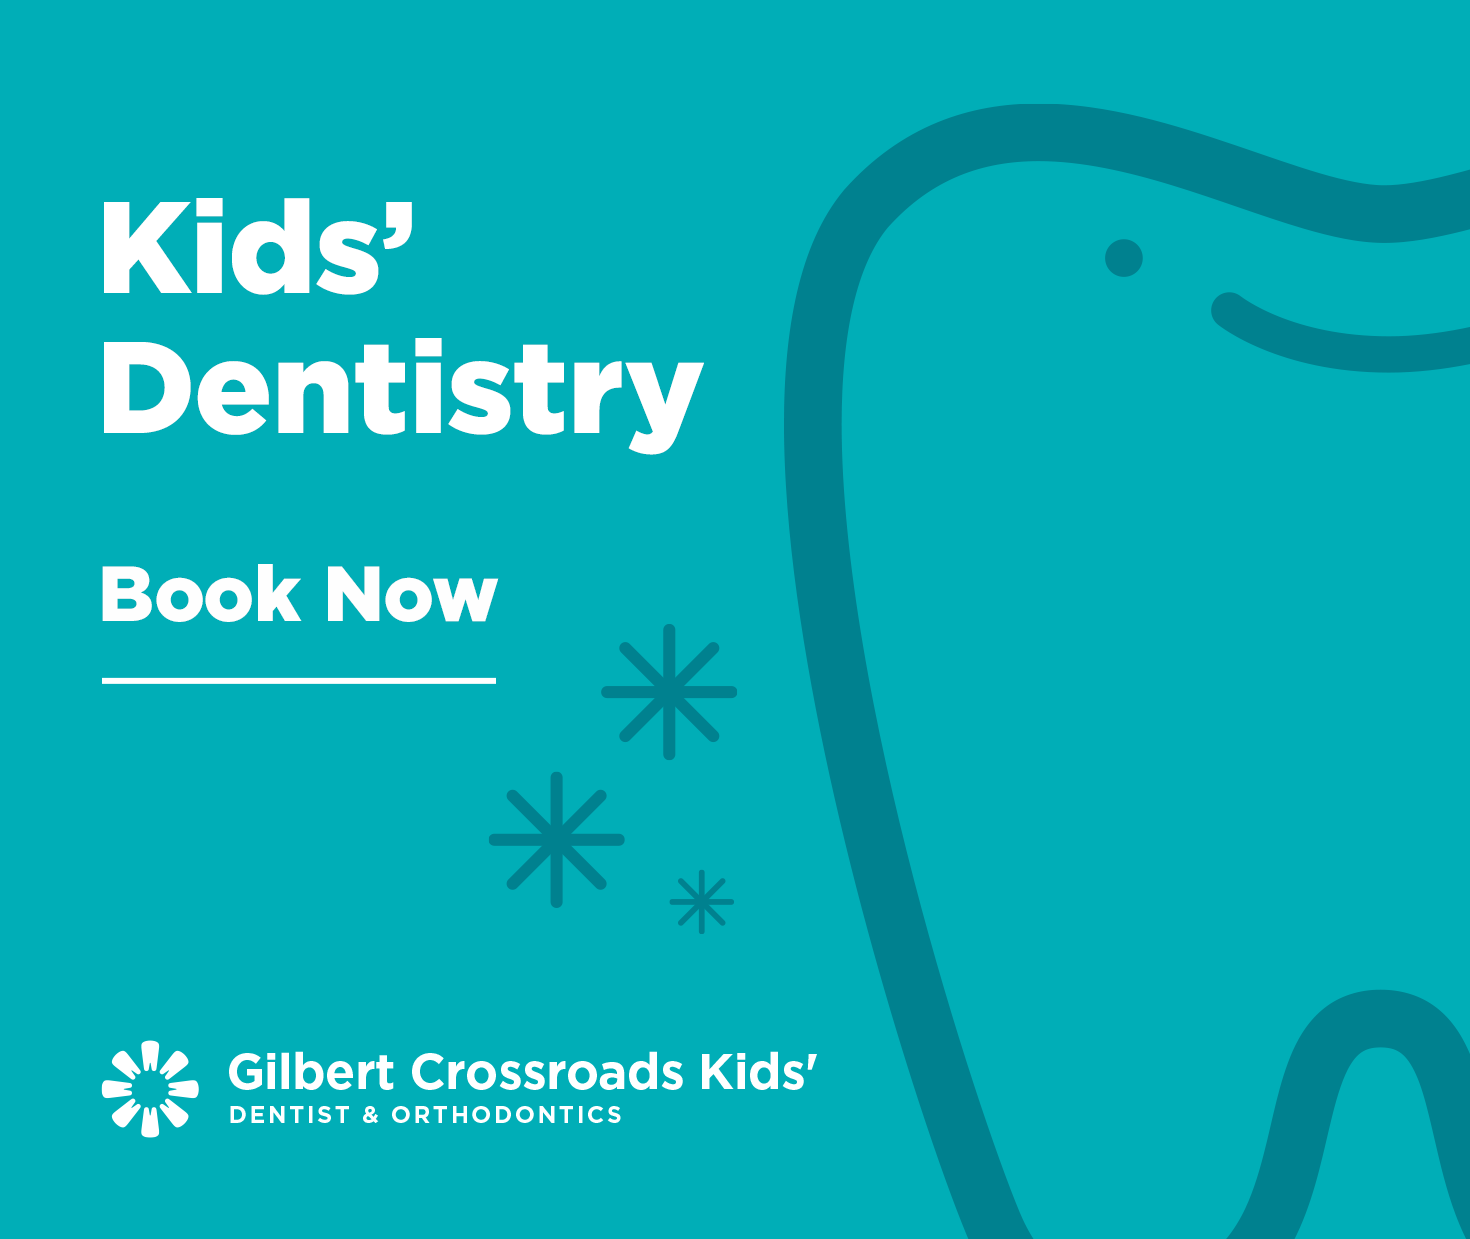 Kids' Dentistry. Book Now. - Dentists of Gilbert Crossroads